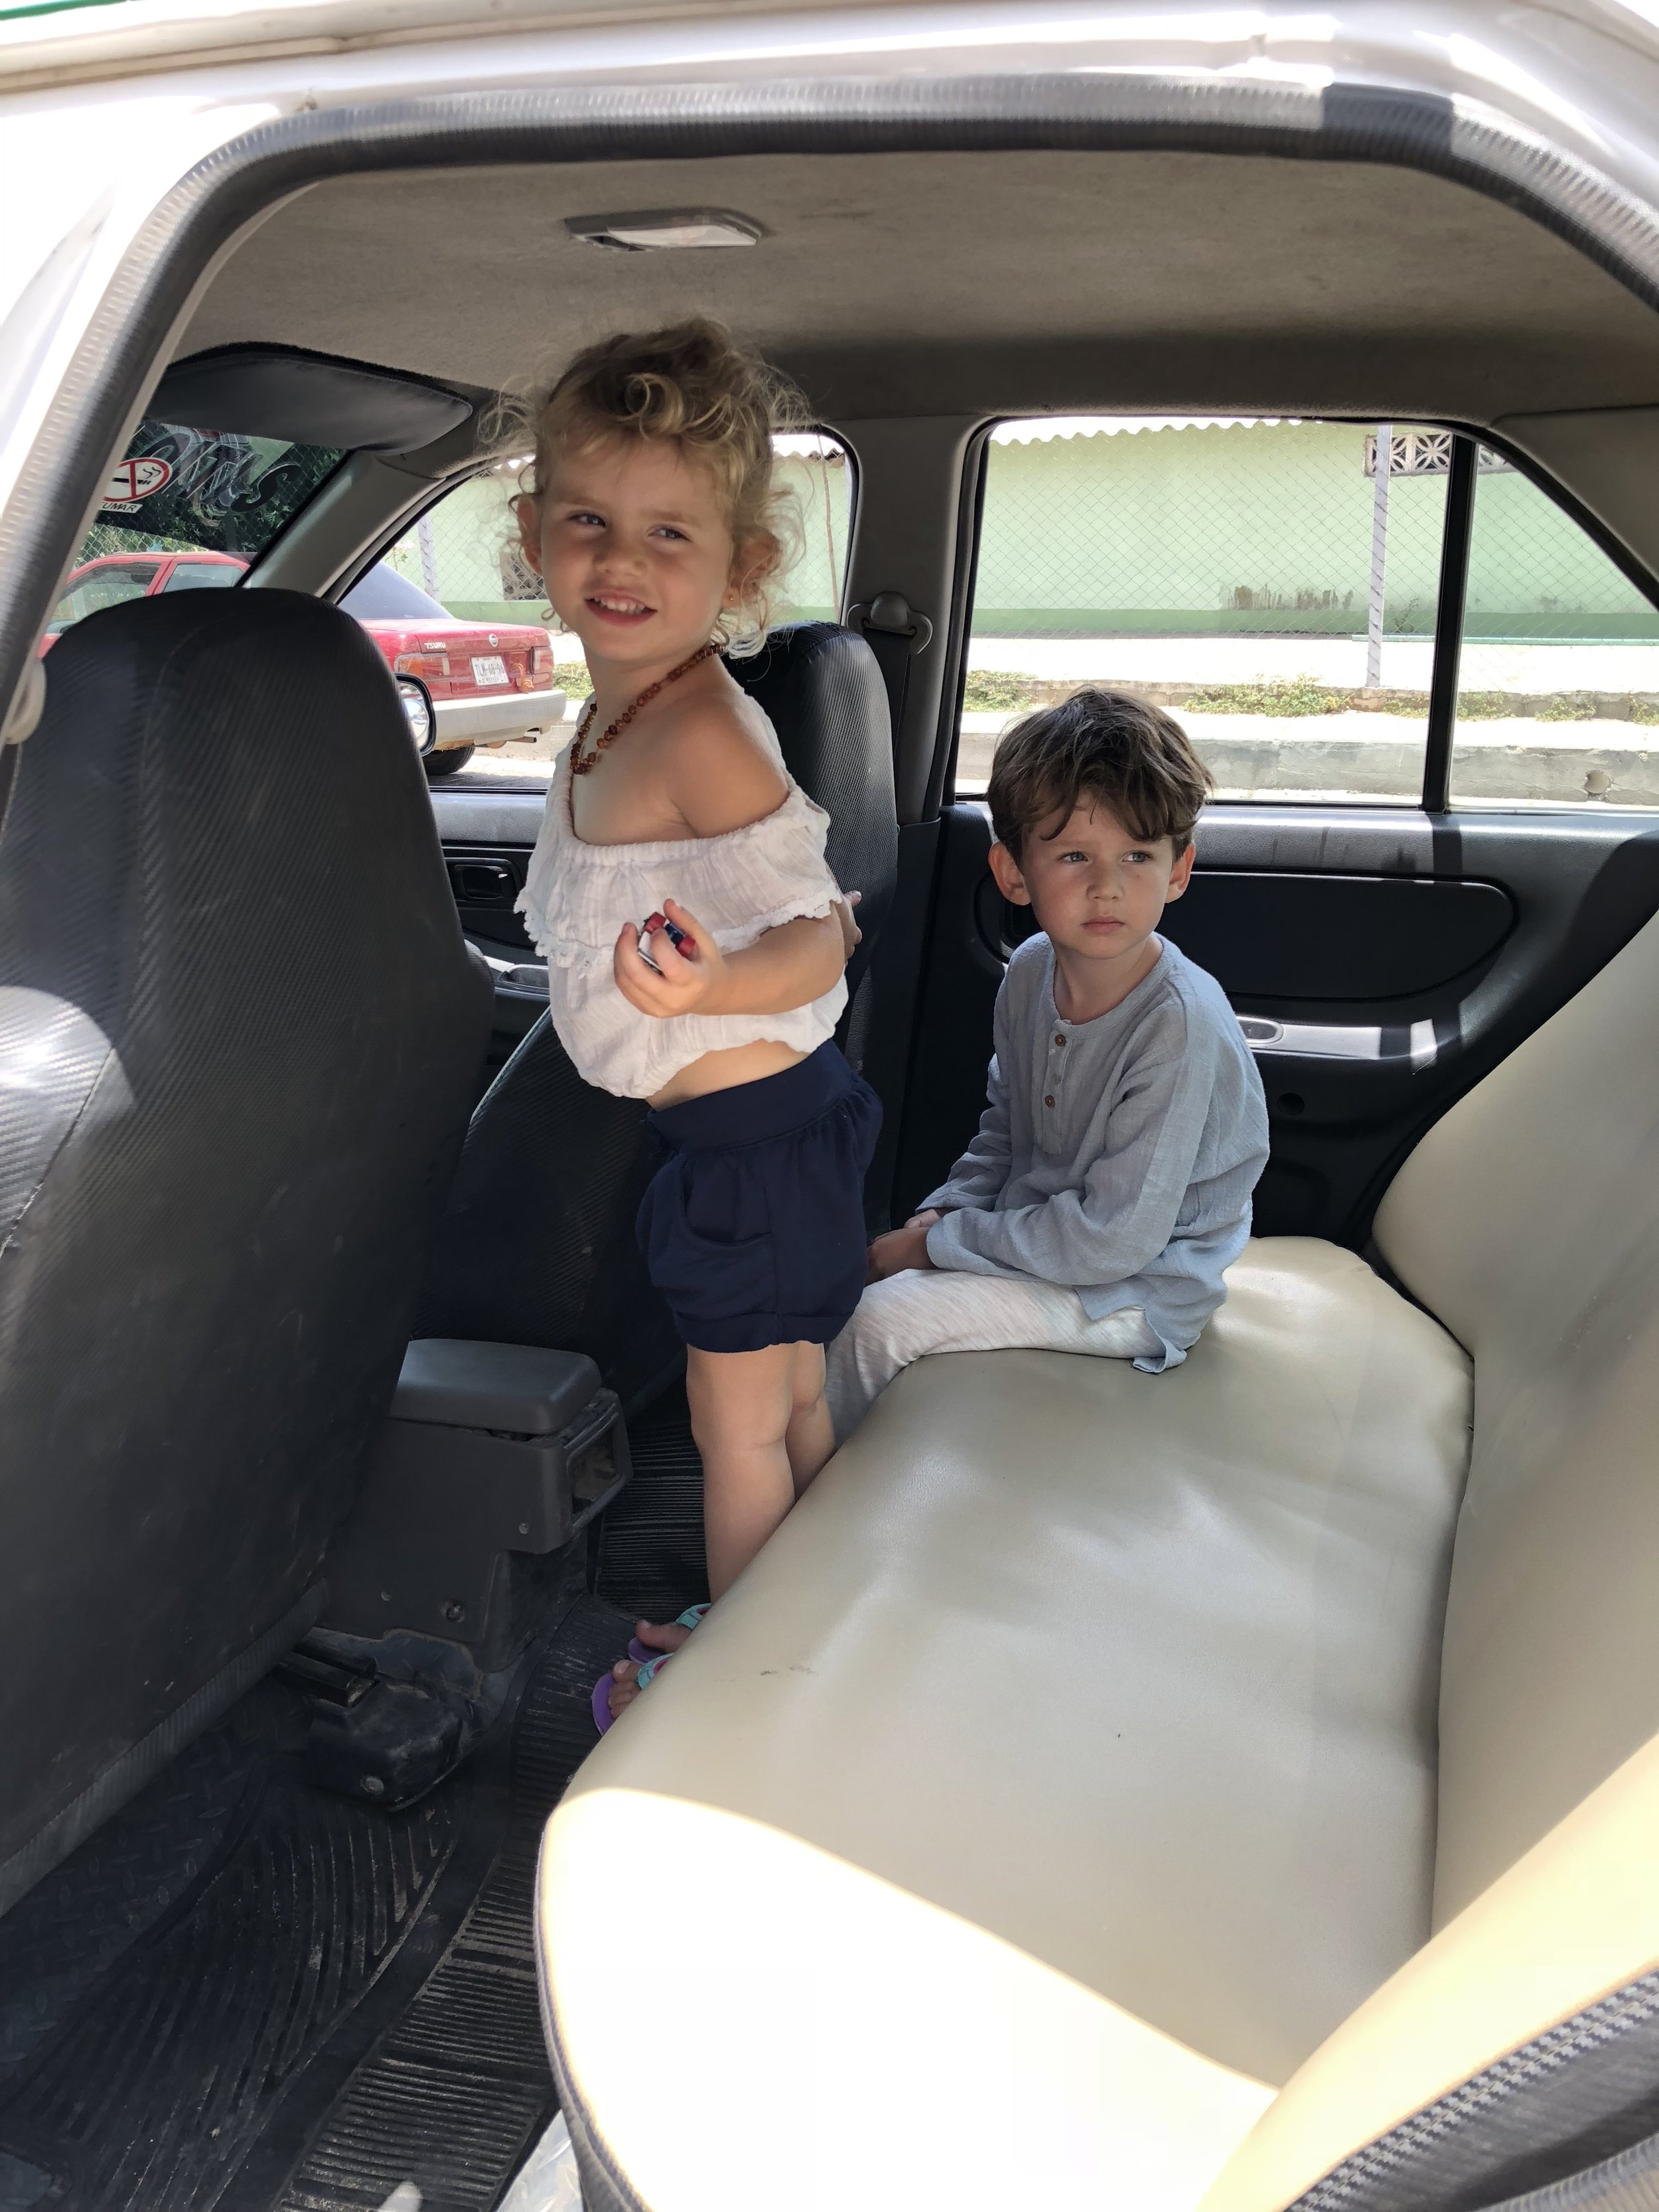 Do kids need car seats in Mexico?